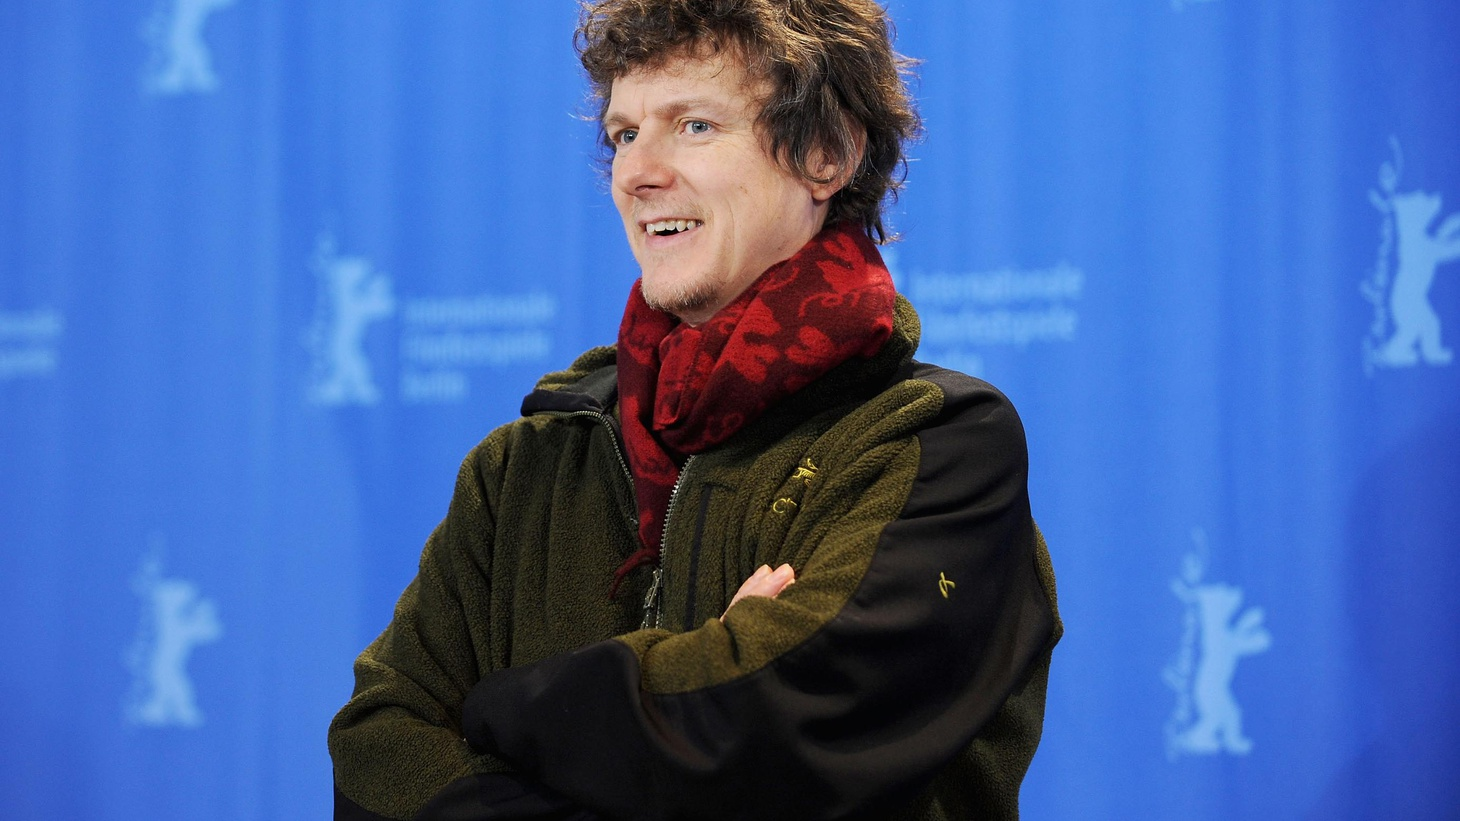 Filmmaker Michel Gondry is guest deejay sharing songs that inspire his work on Morning Becomes Eclectic at 11:15am.